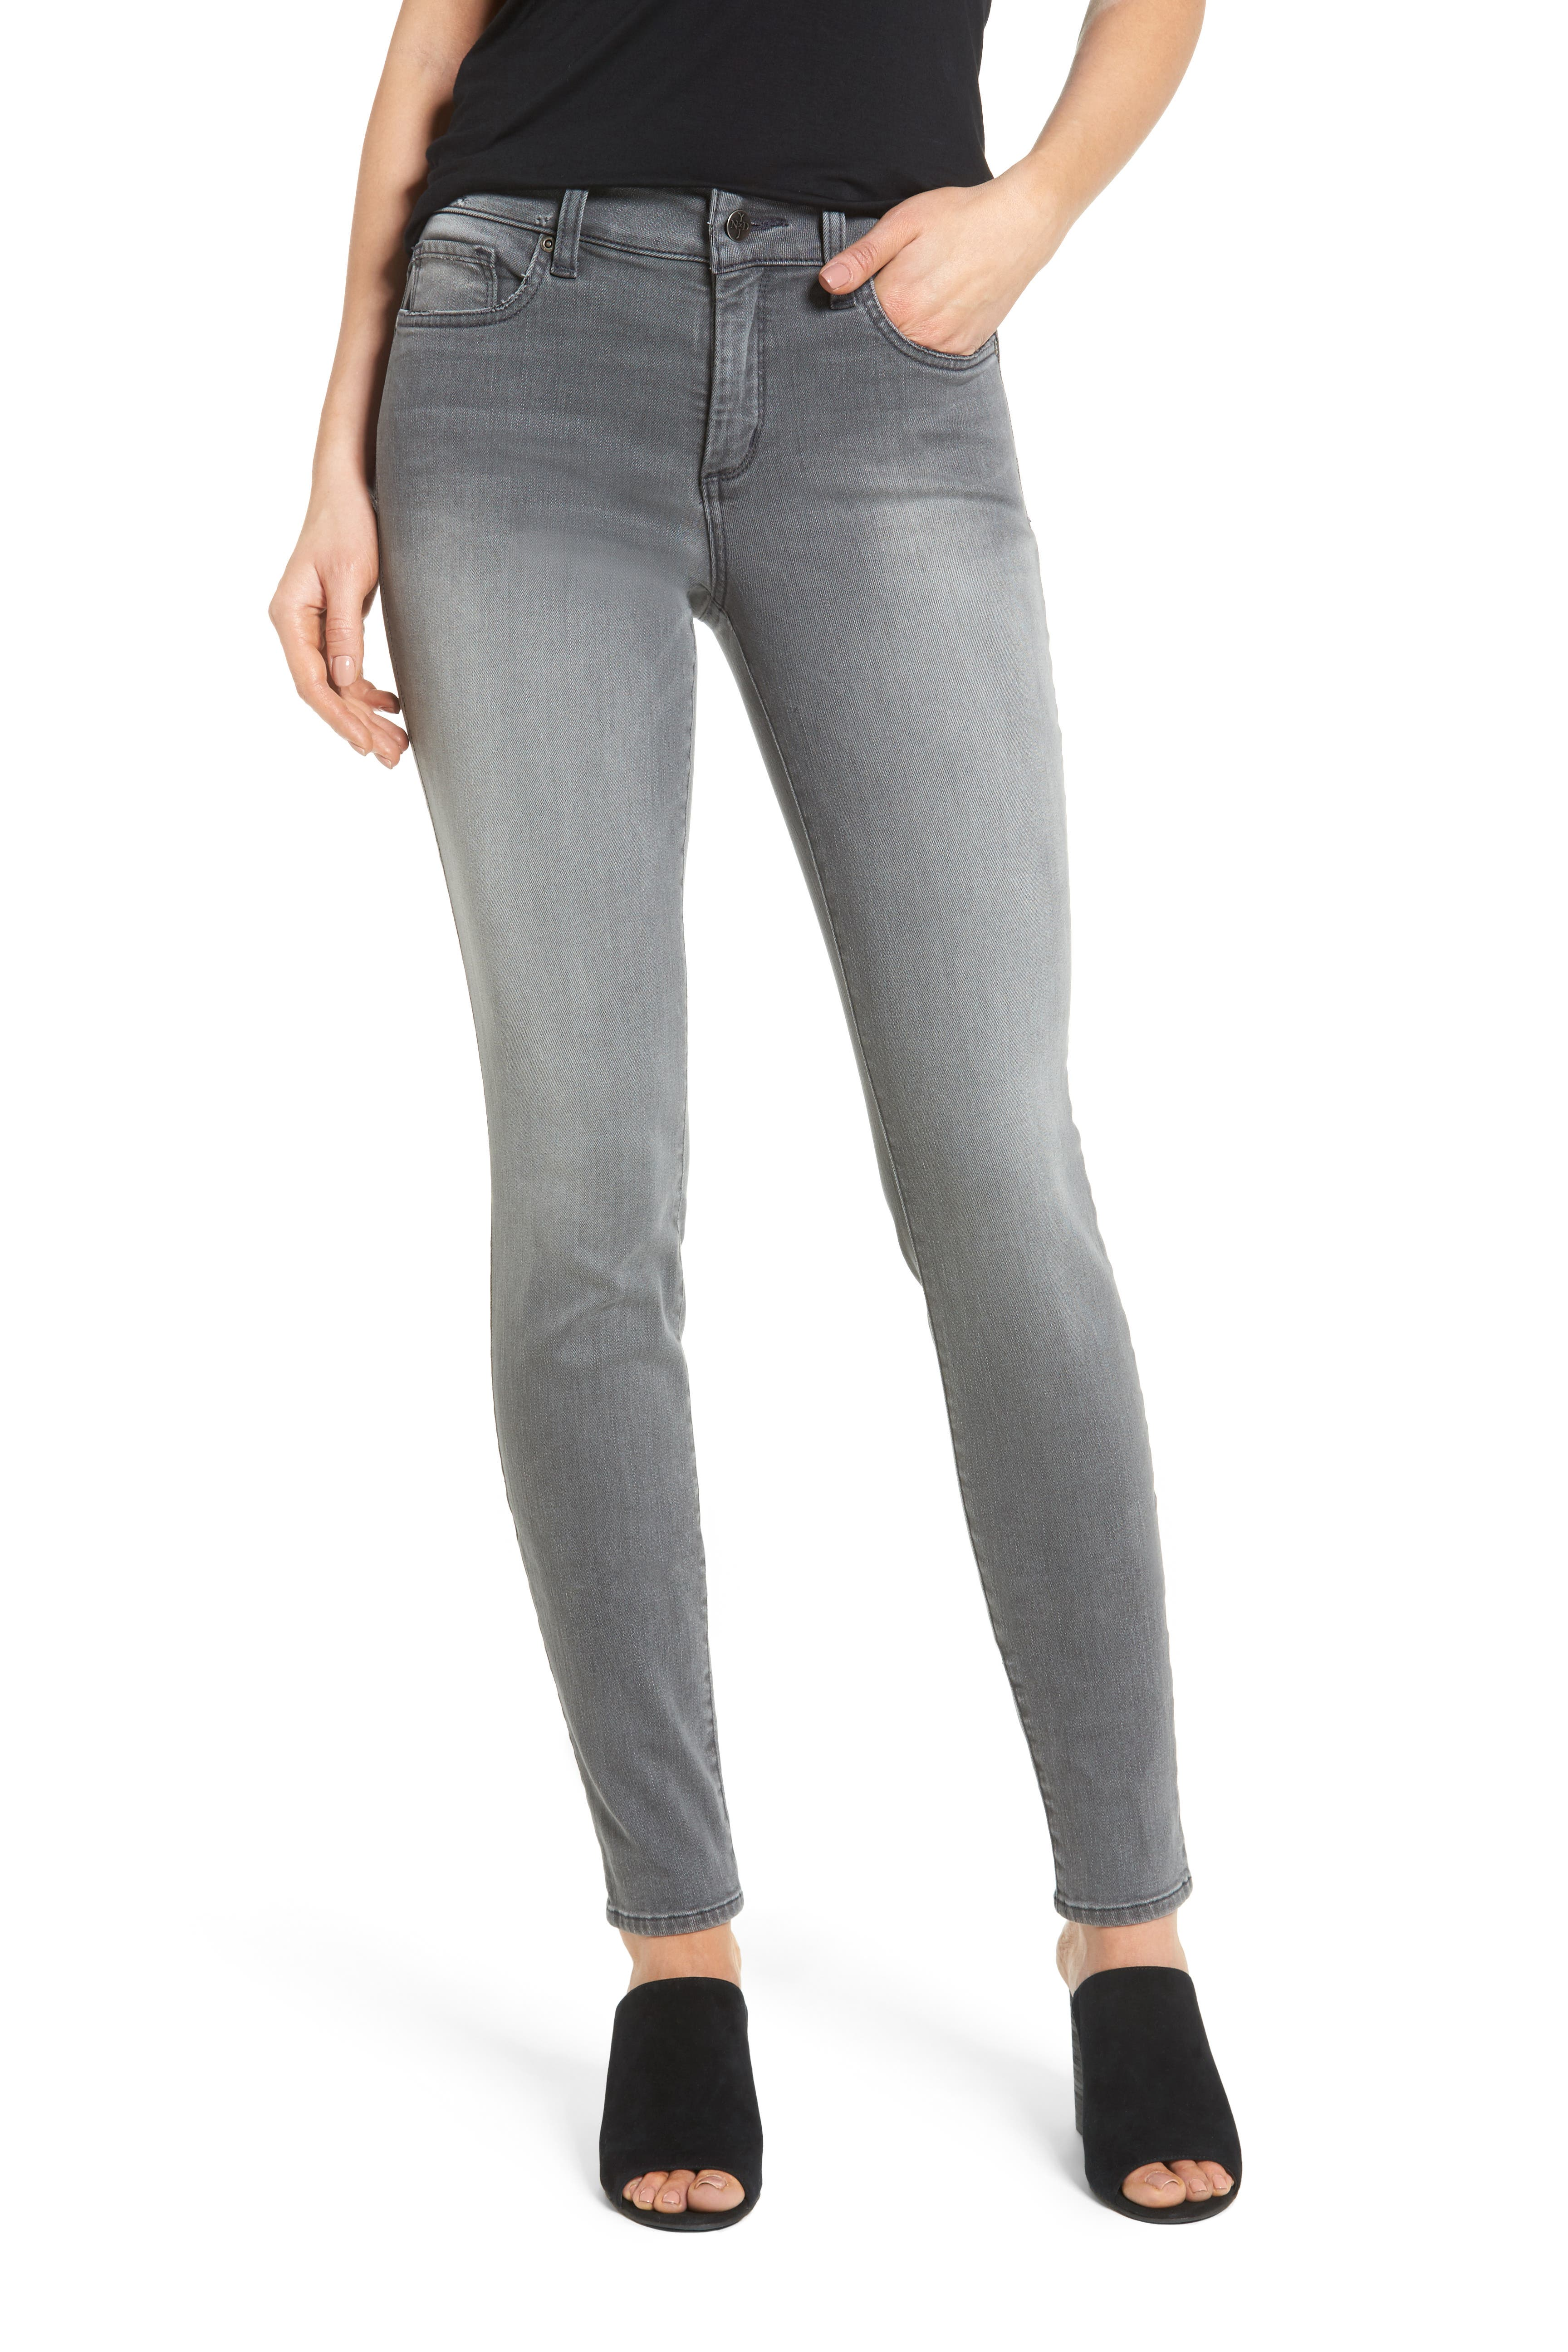 Ami Stretch Skinny Jeans,                             Main thumbnail 1, color,                             035